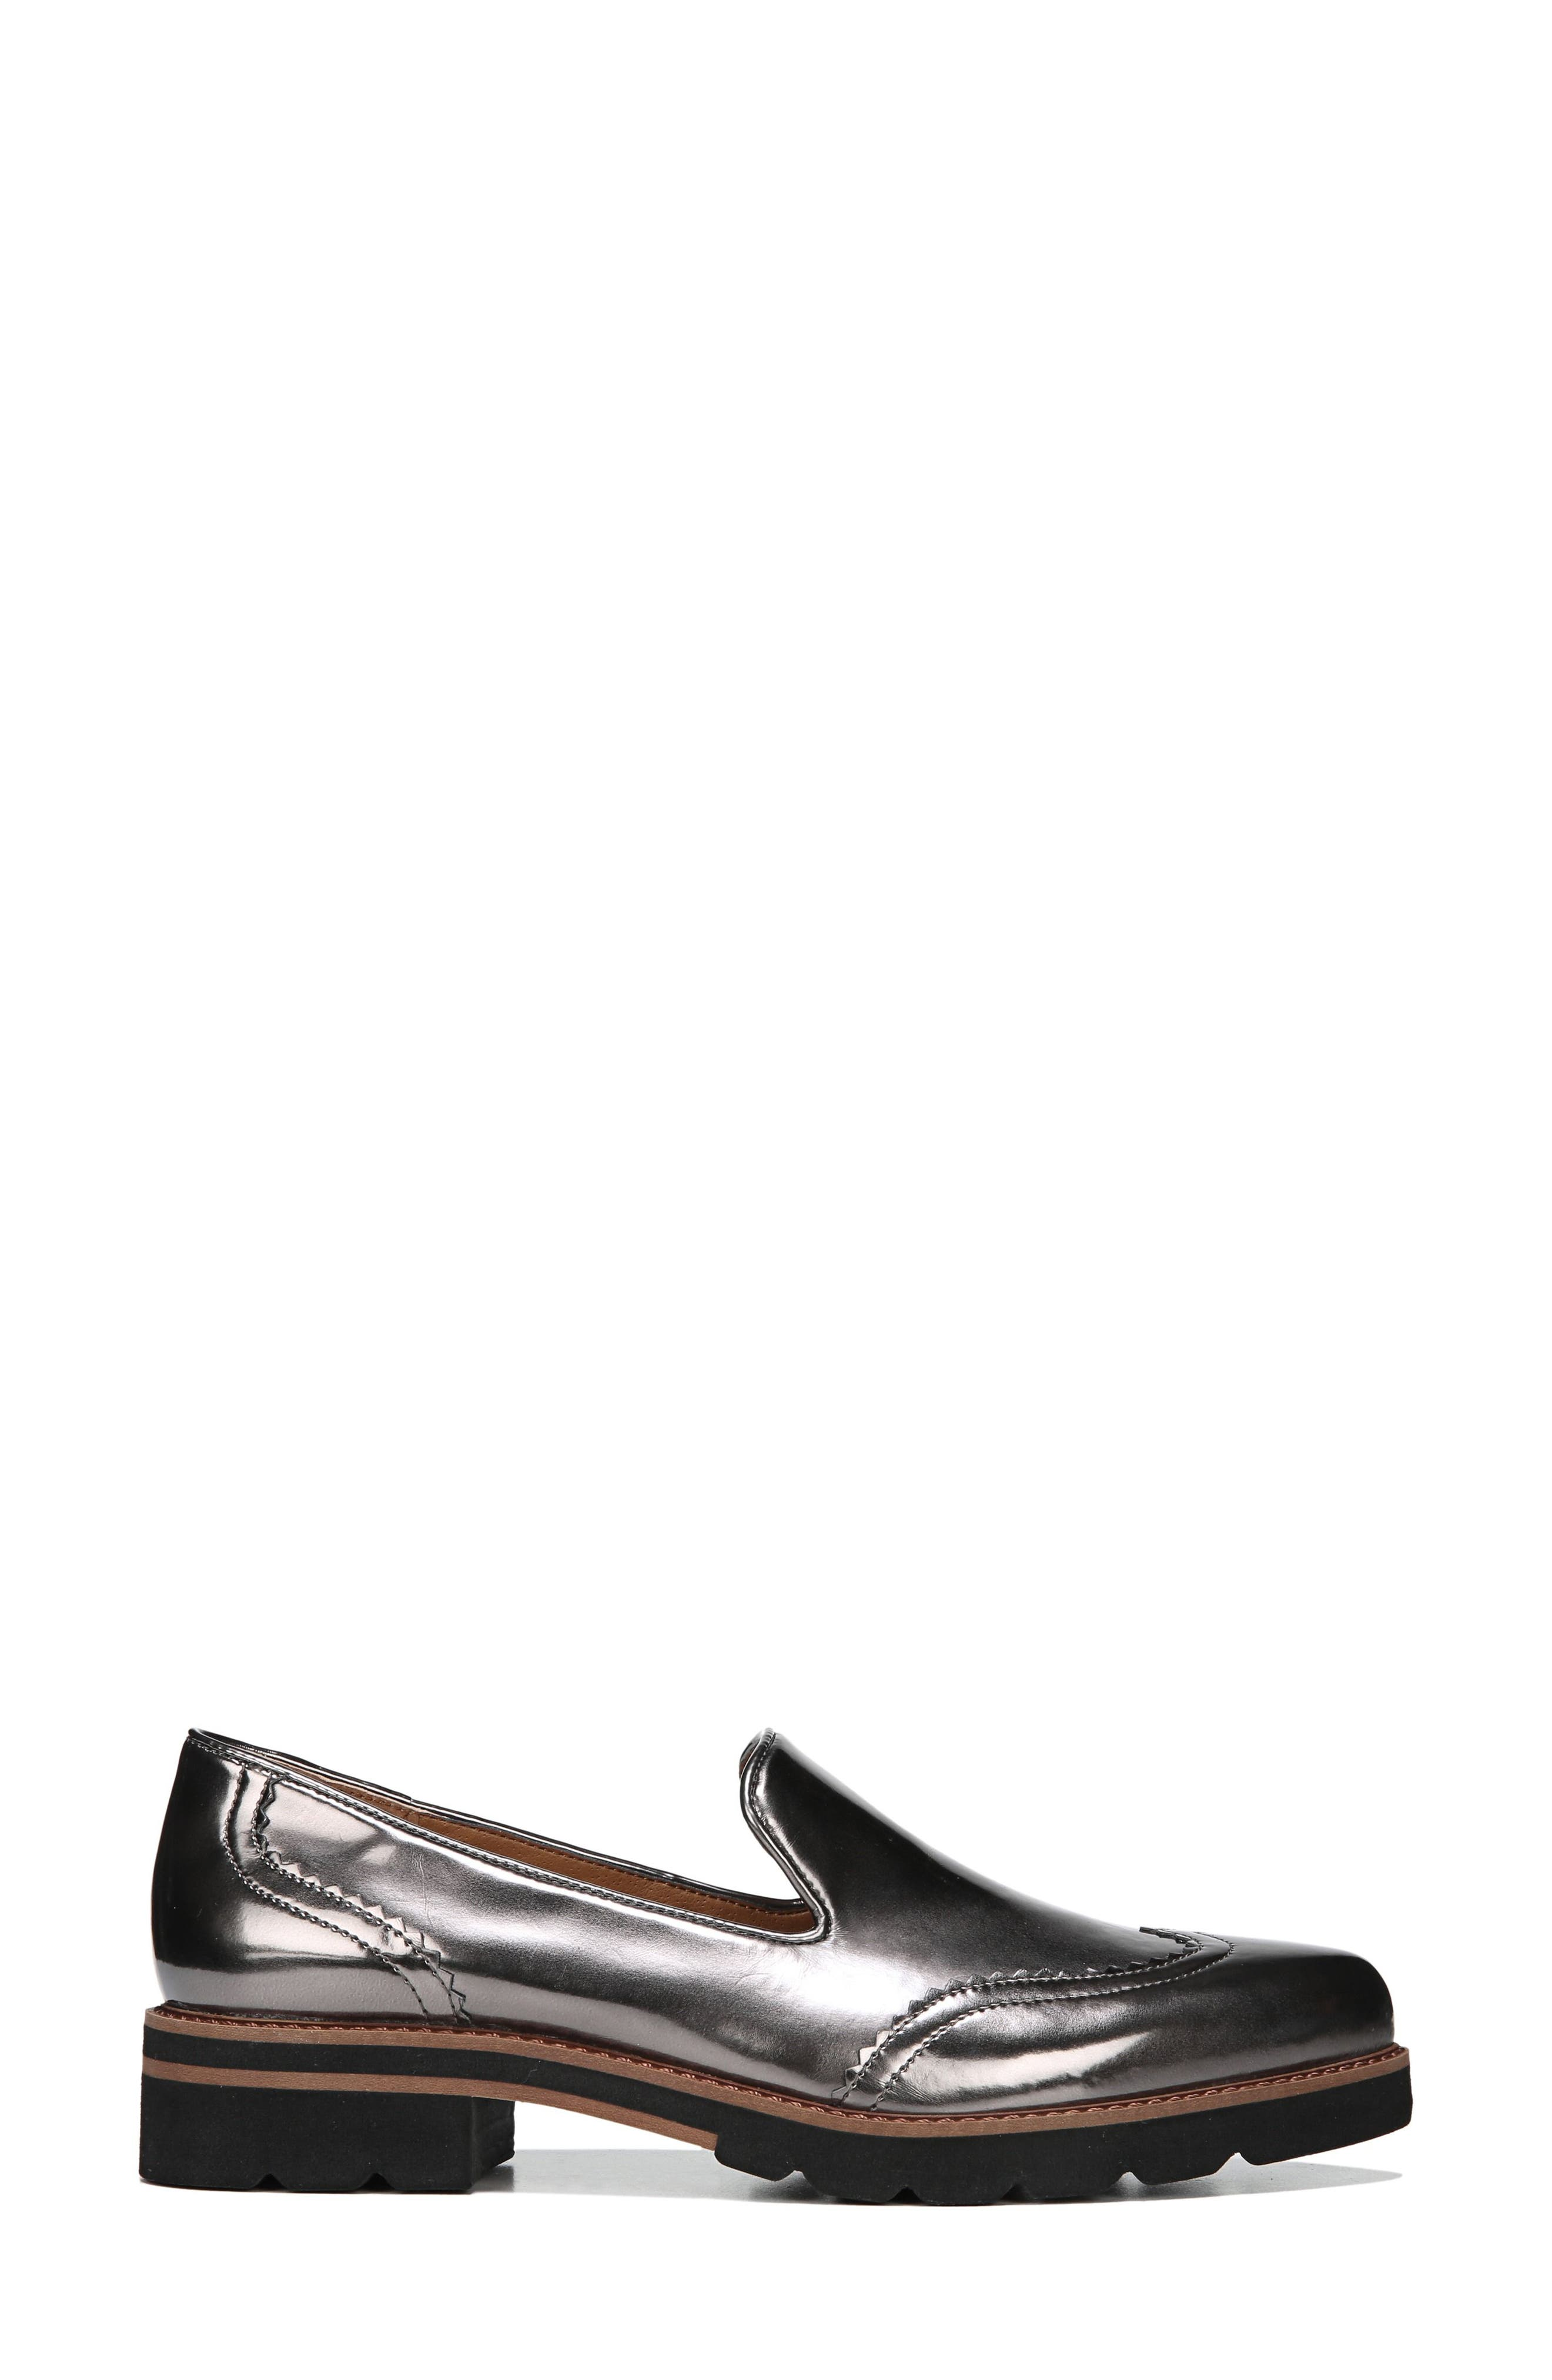 Betsy Loafer,                             Alternate thumbnail 3, color,                             GUNMETAL FAUX PATENT SUEDE